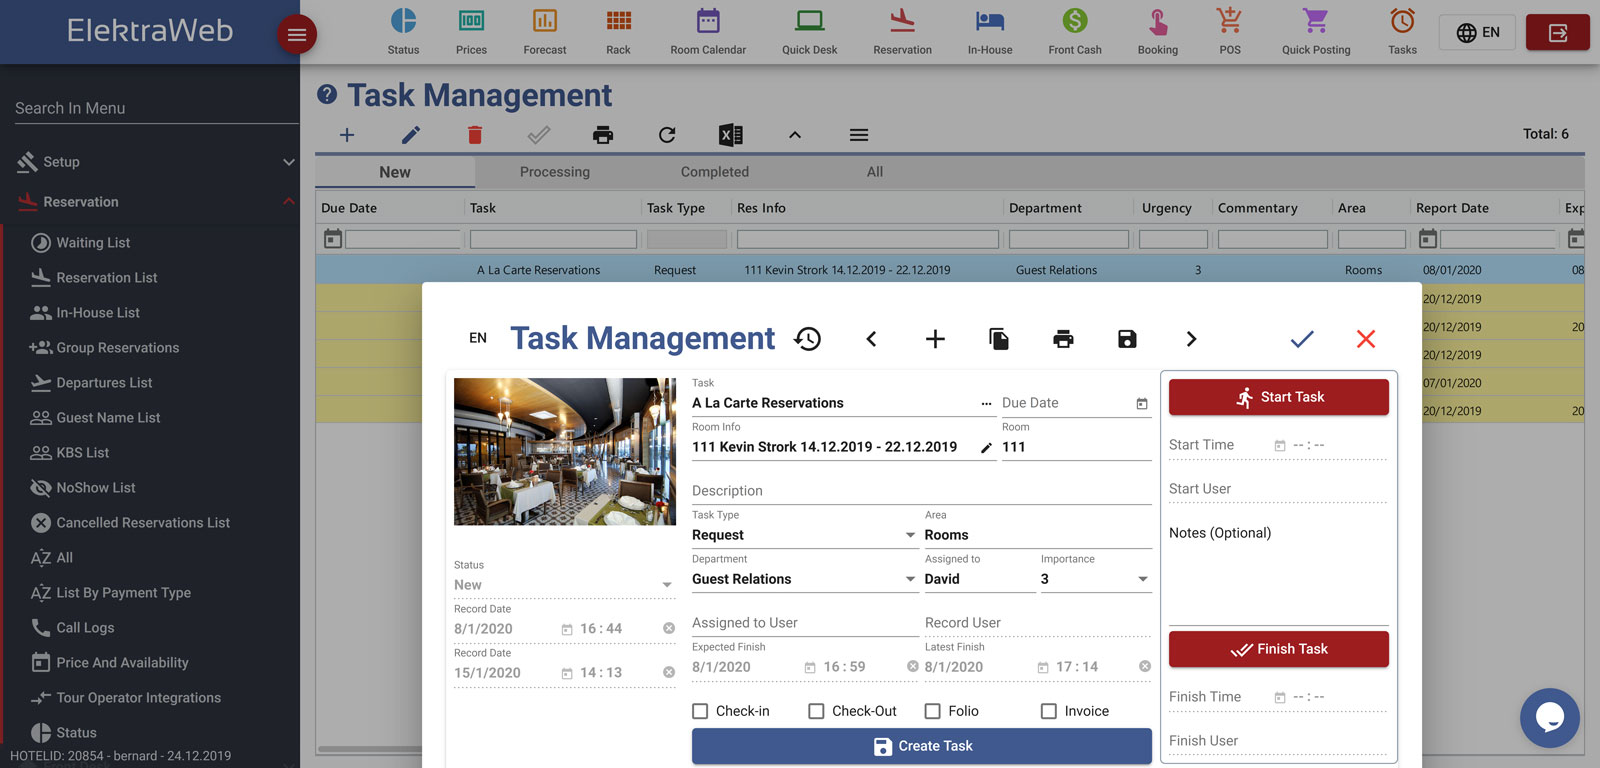 Hotel Program Task Management-Elektraweb Hotel Management System & Hotel Software